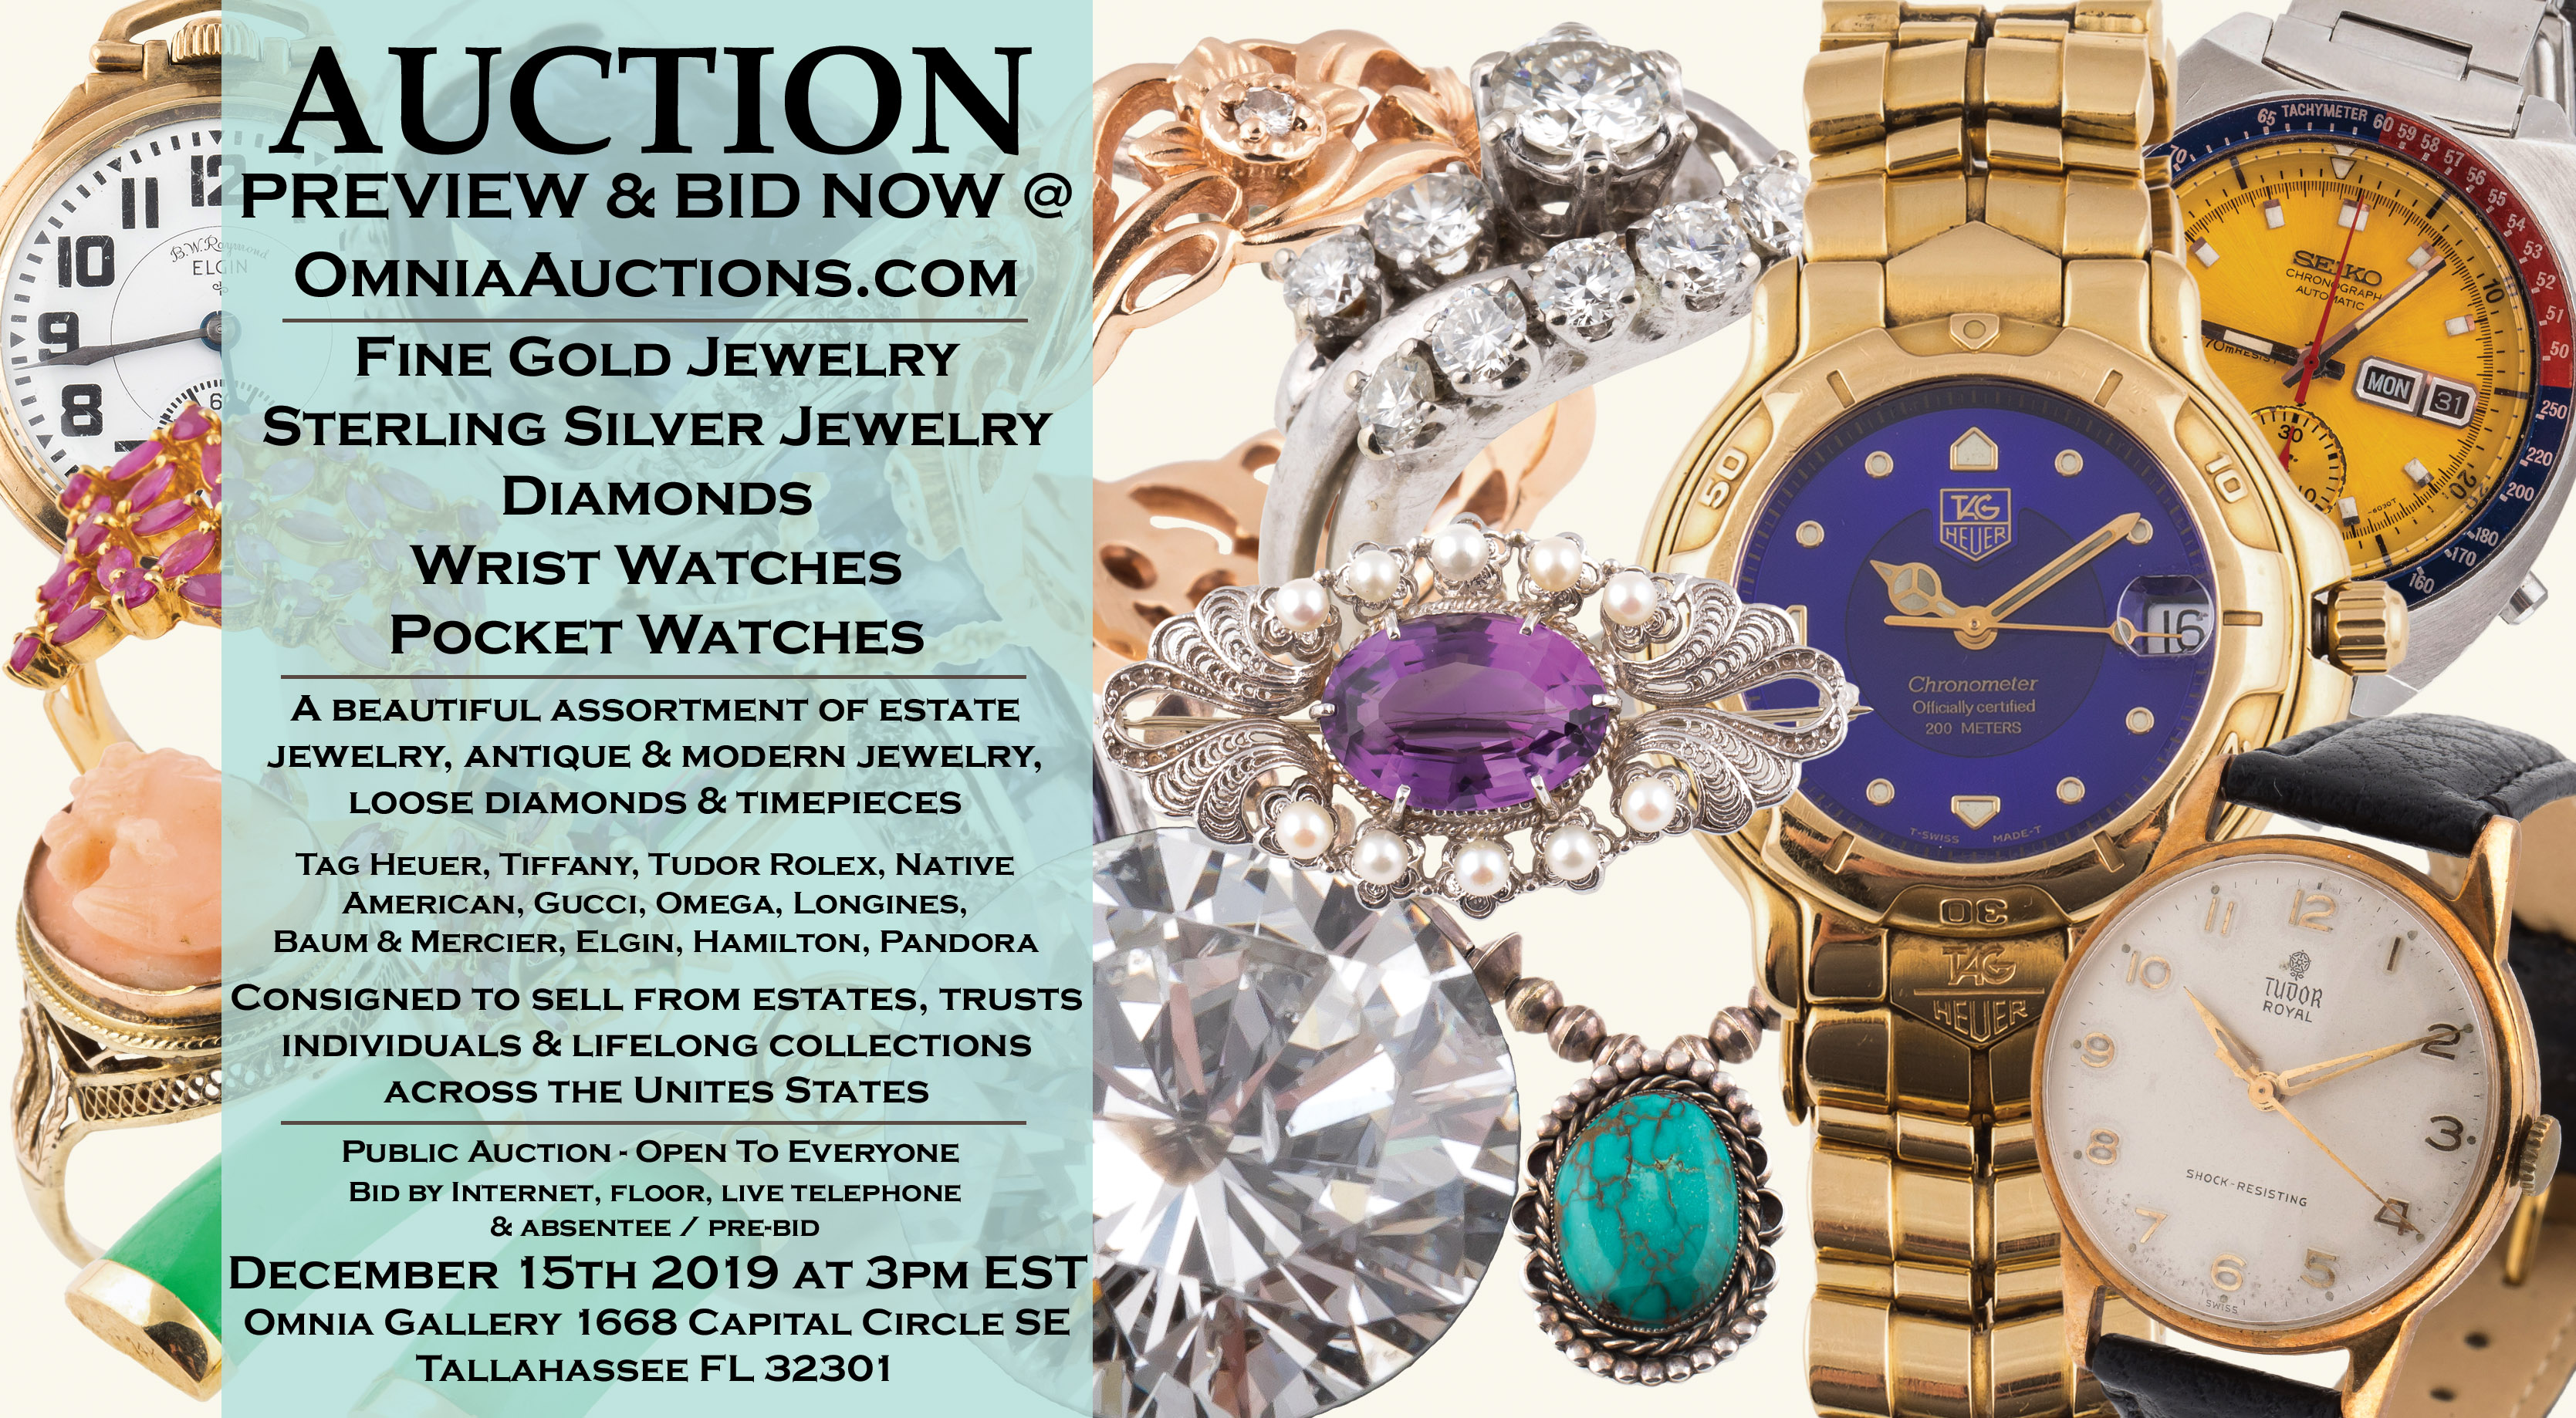 Fine Gold & Silver Estate Jewelry, Diamond, Native American Sterling, Pocket Watch, Wrist Watch Auction